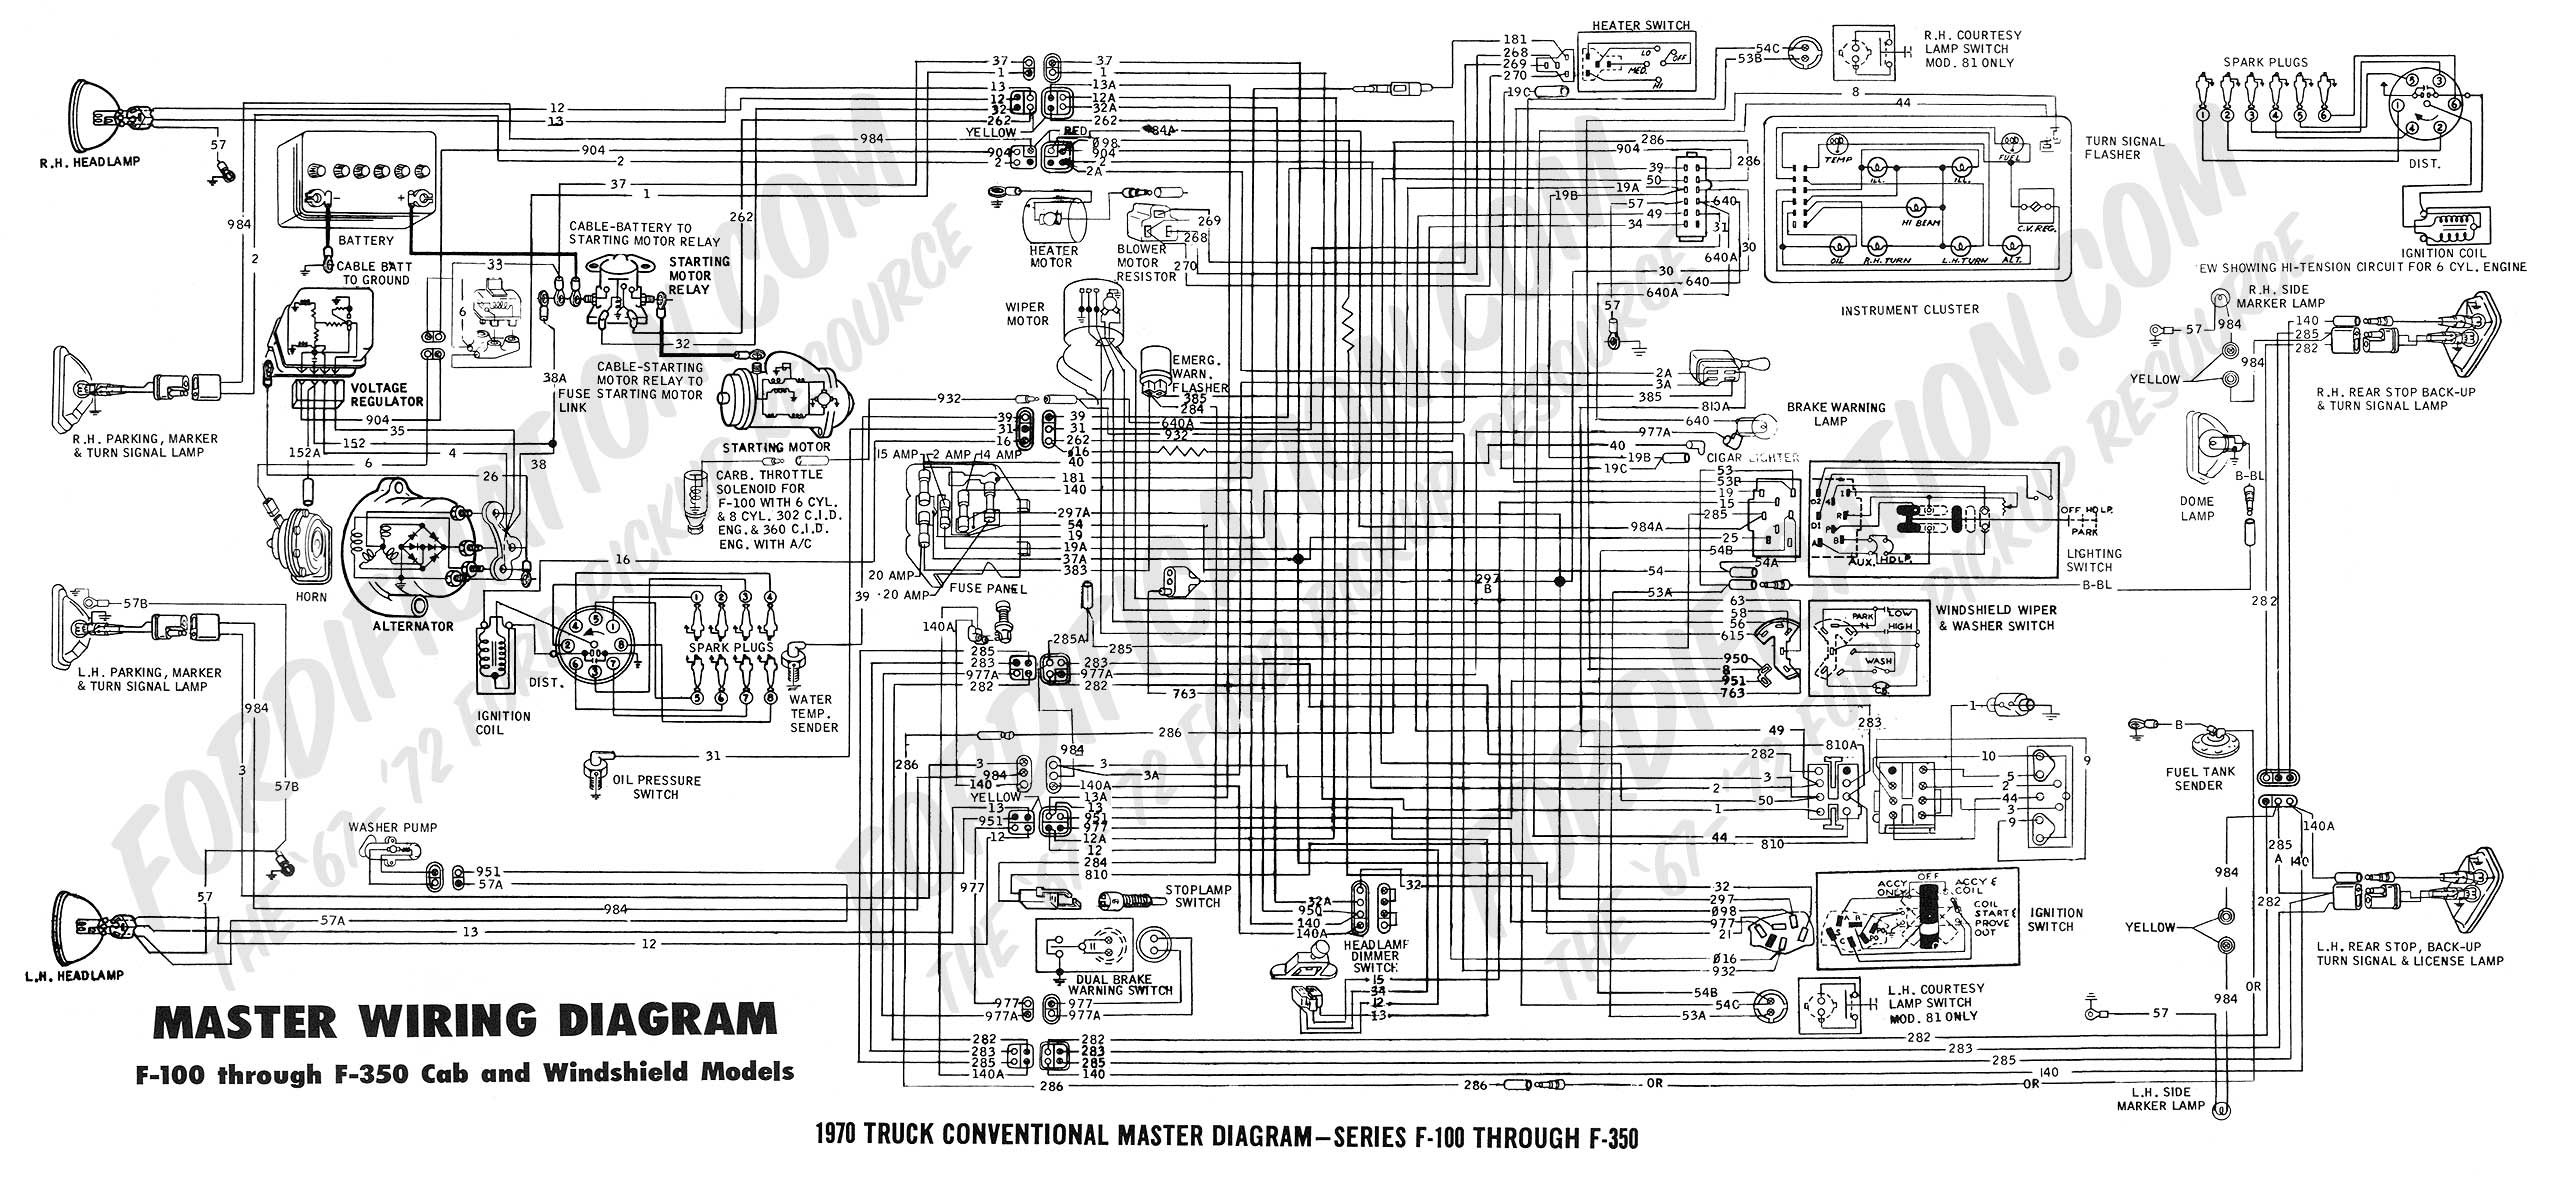 1977 Ford Ranchero Wiring Diagrams Archive Of Automotive 1973 Electrical 1967 Truck Steering Column Diagram Data Schema Rh Site De Joueurs Com